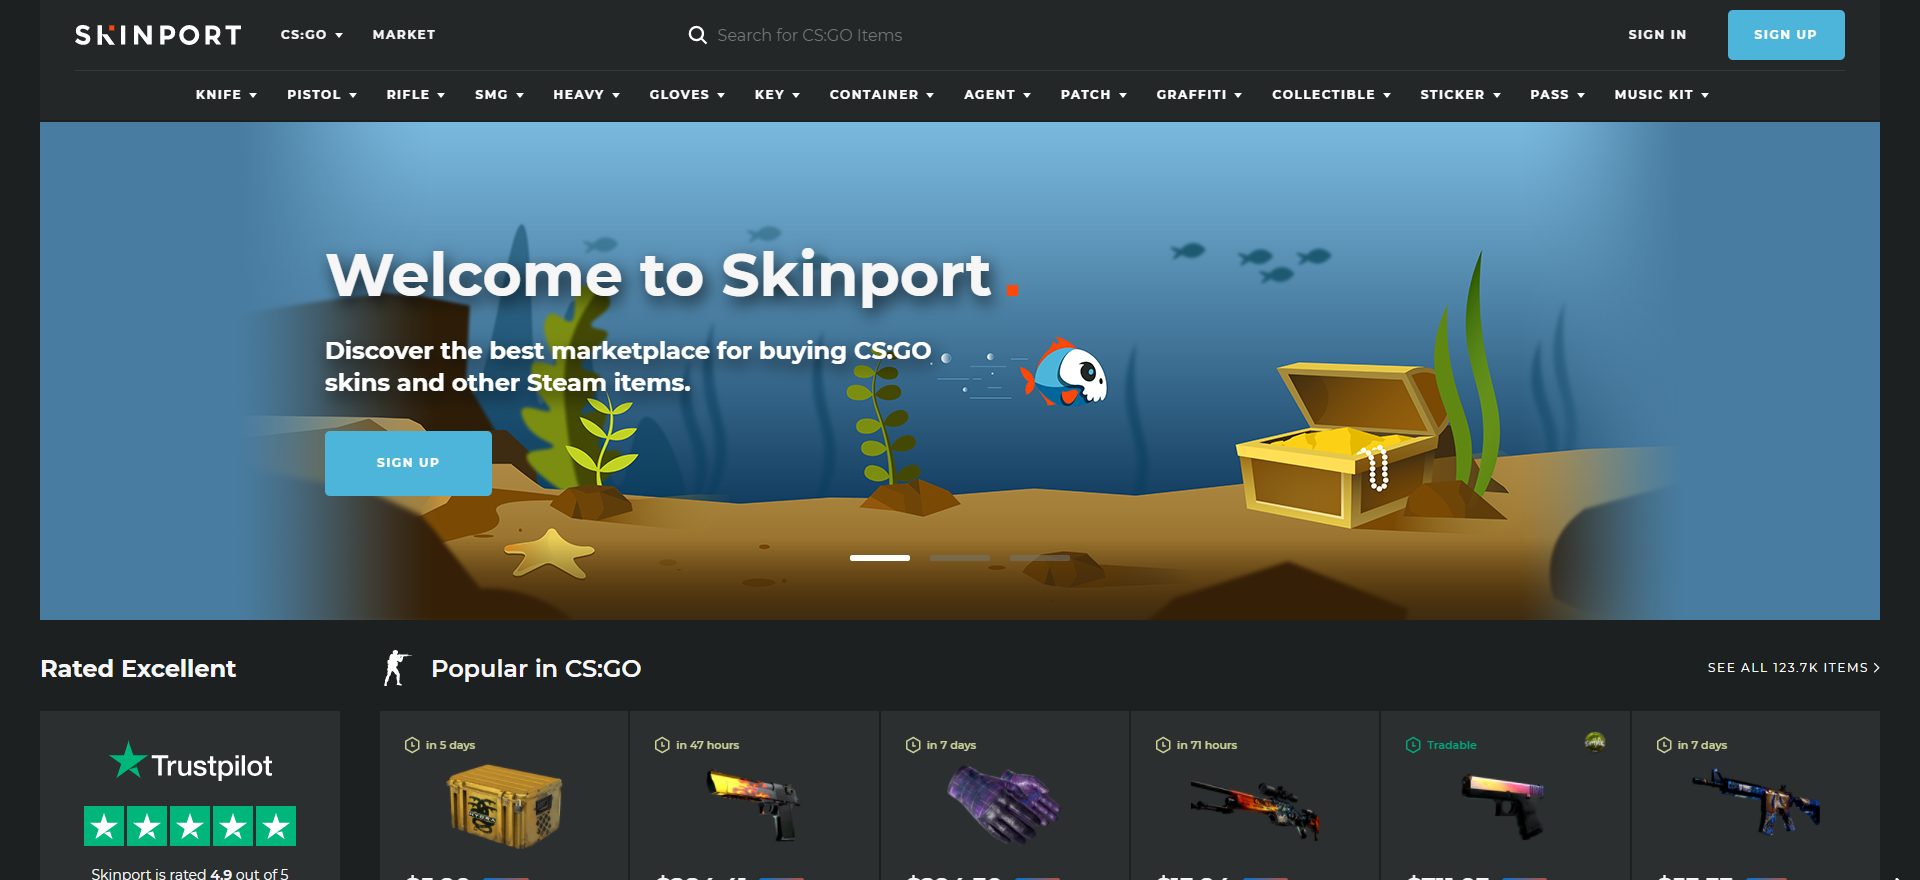 Skinport Review